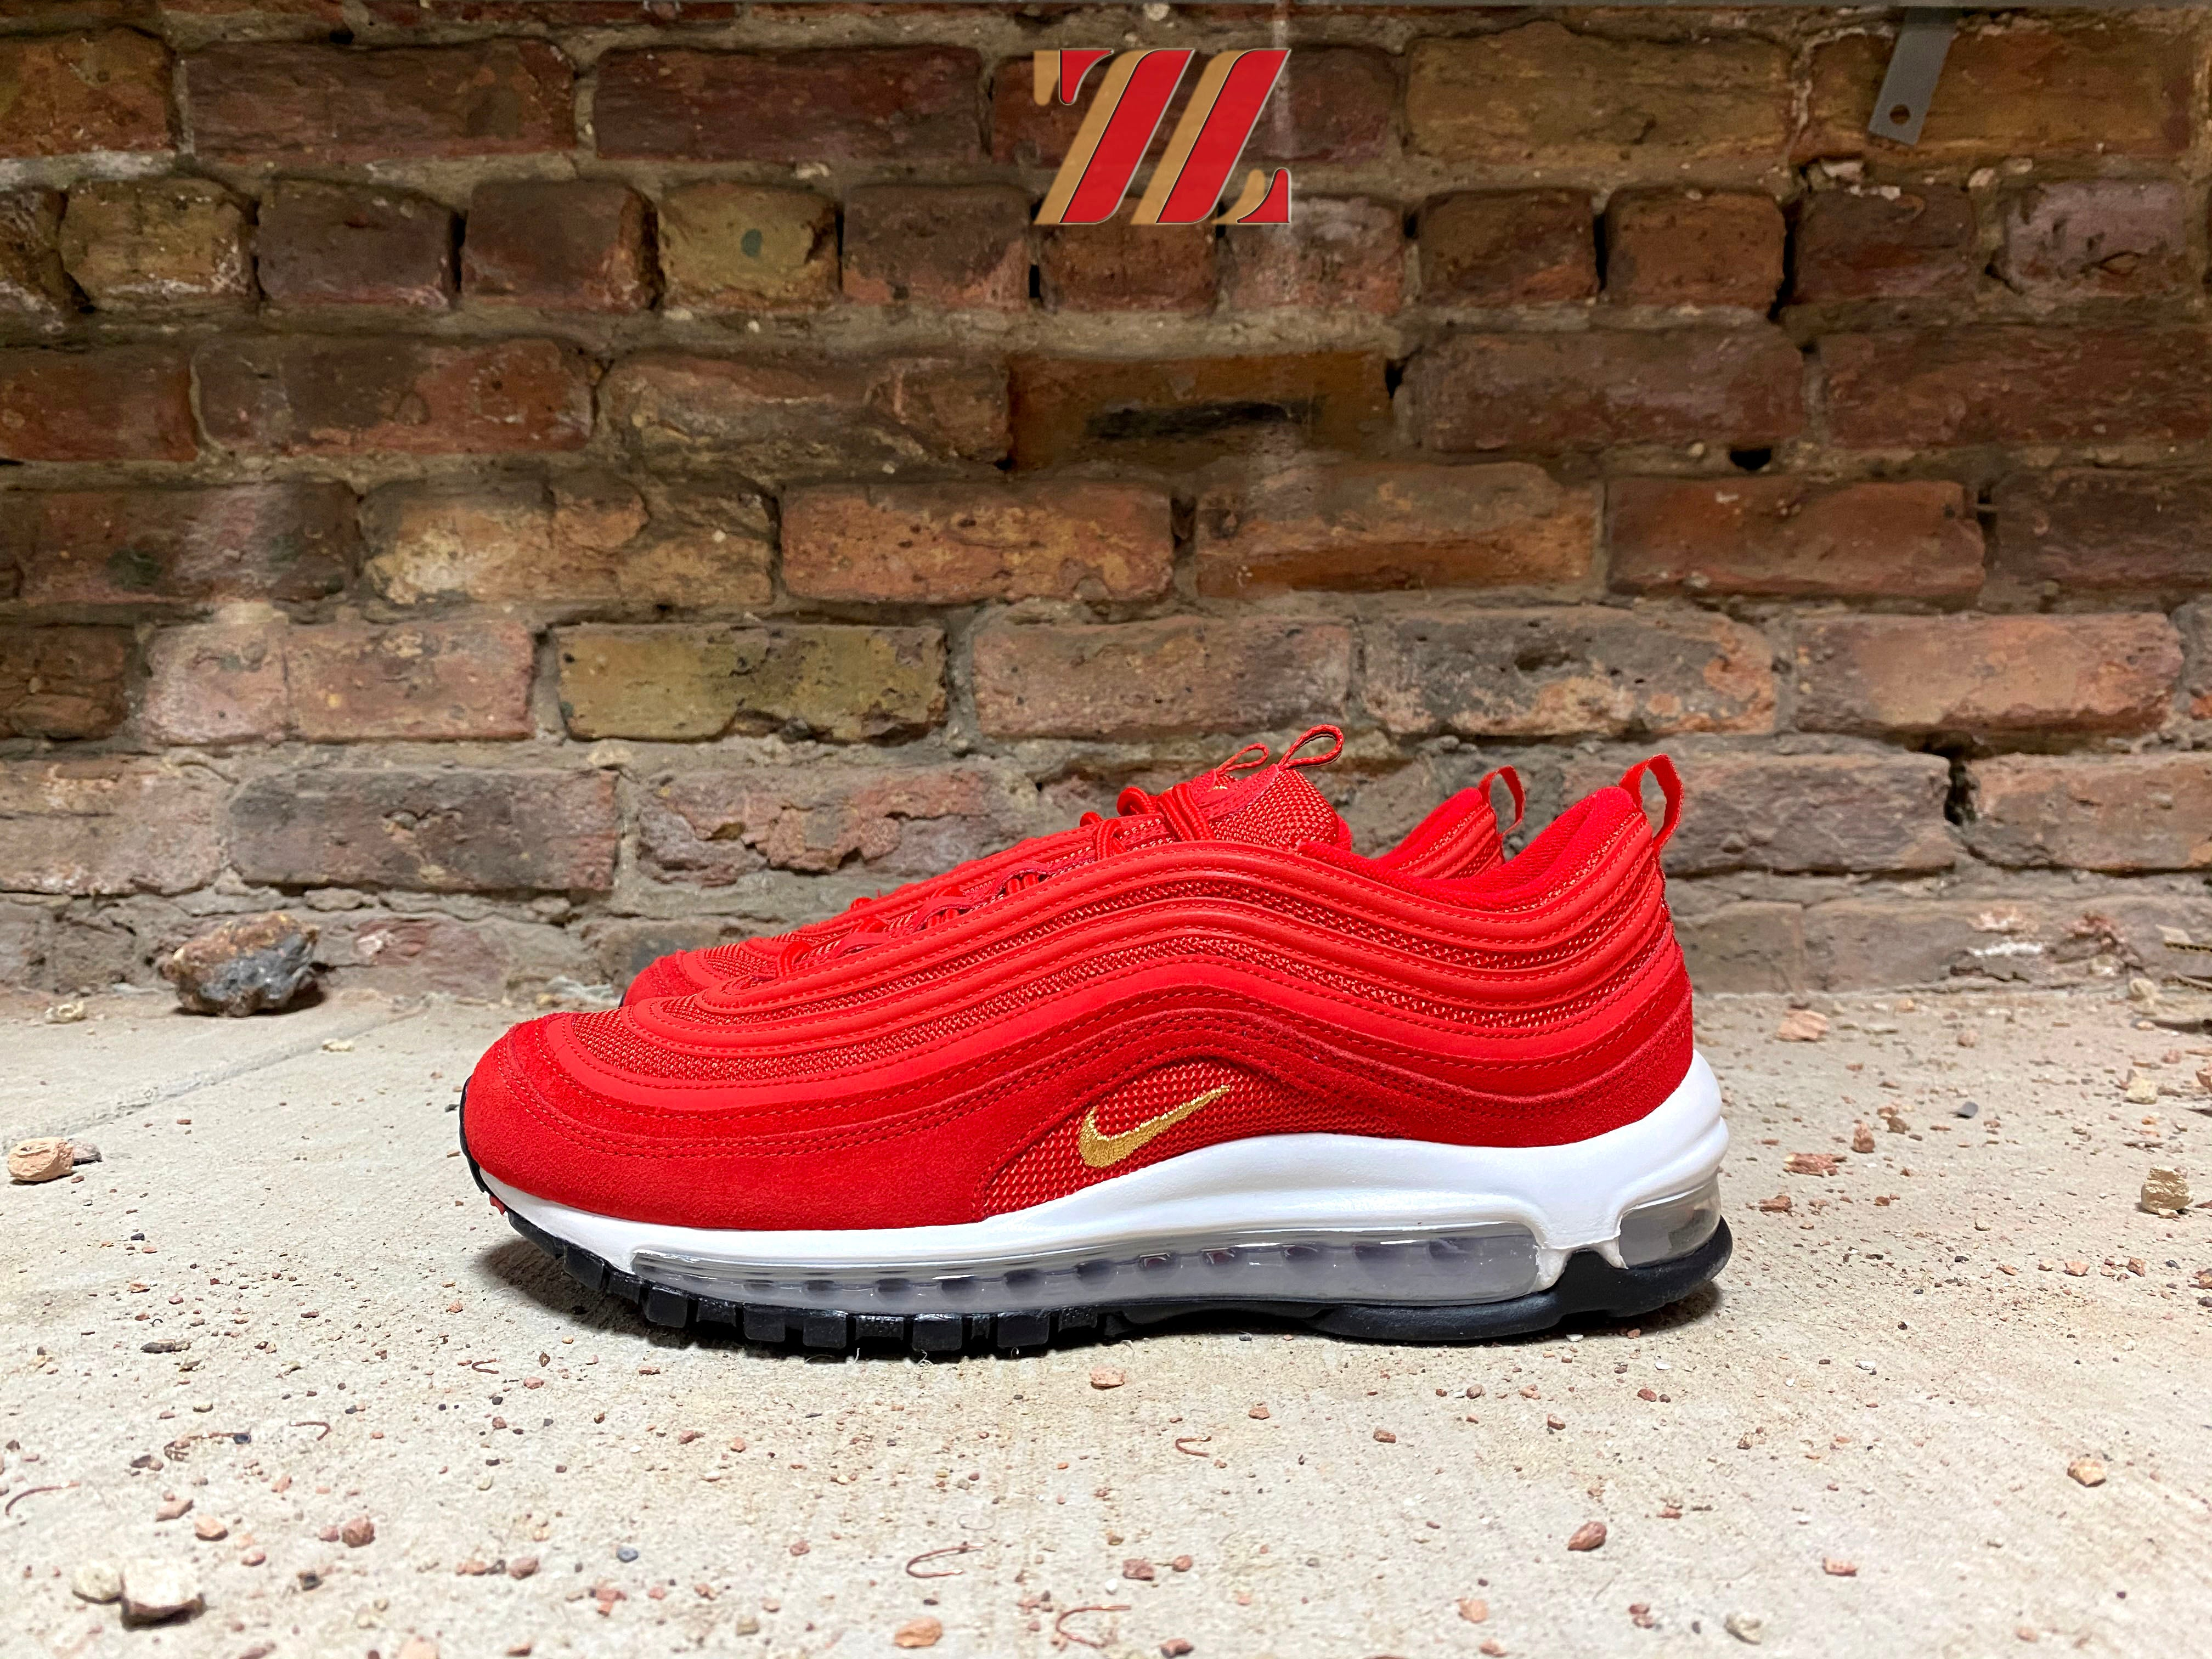 Men's Nike Air Max 97 Olympic Red